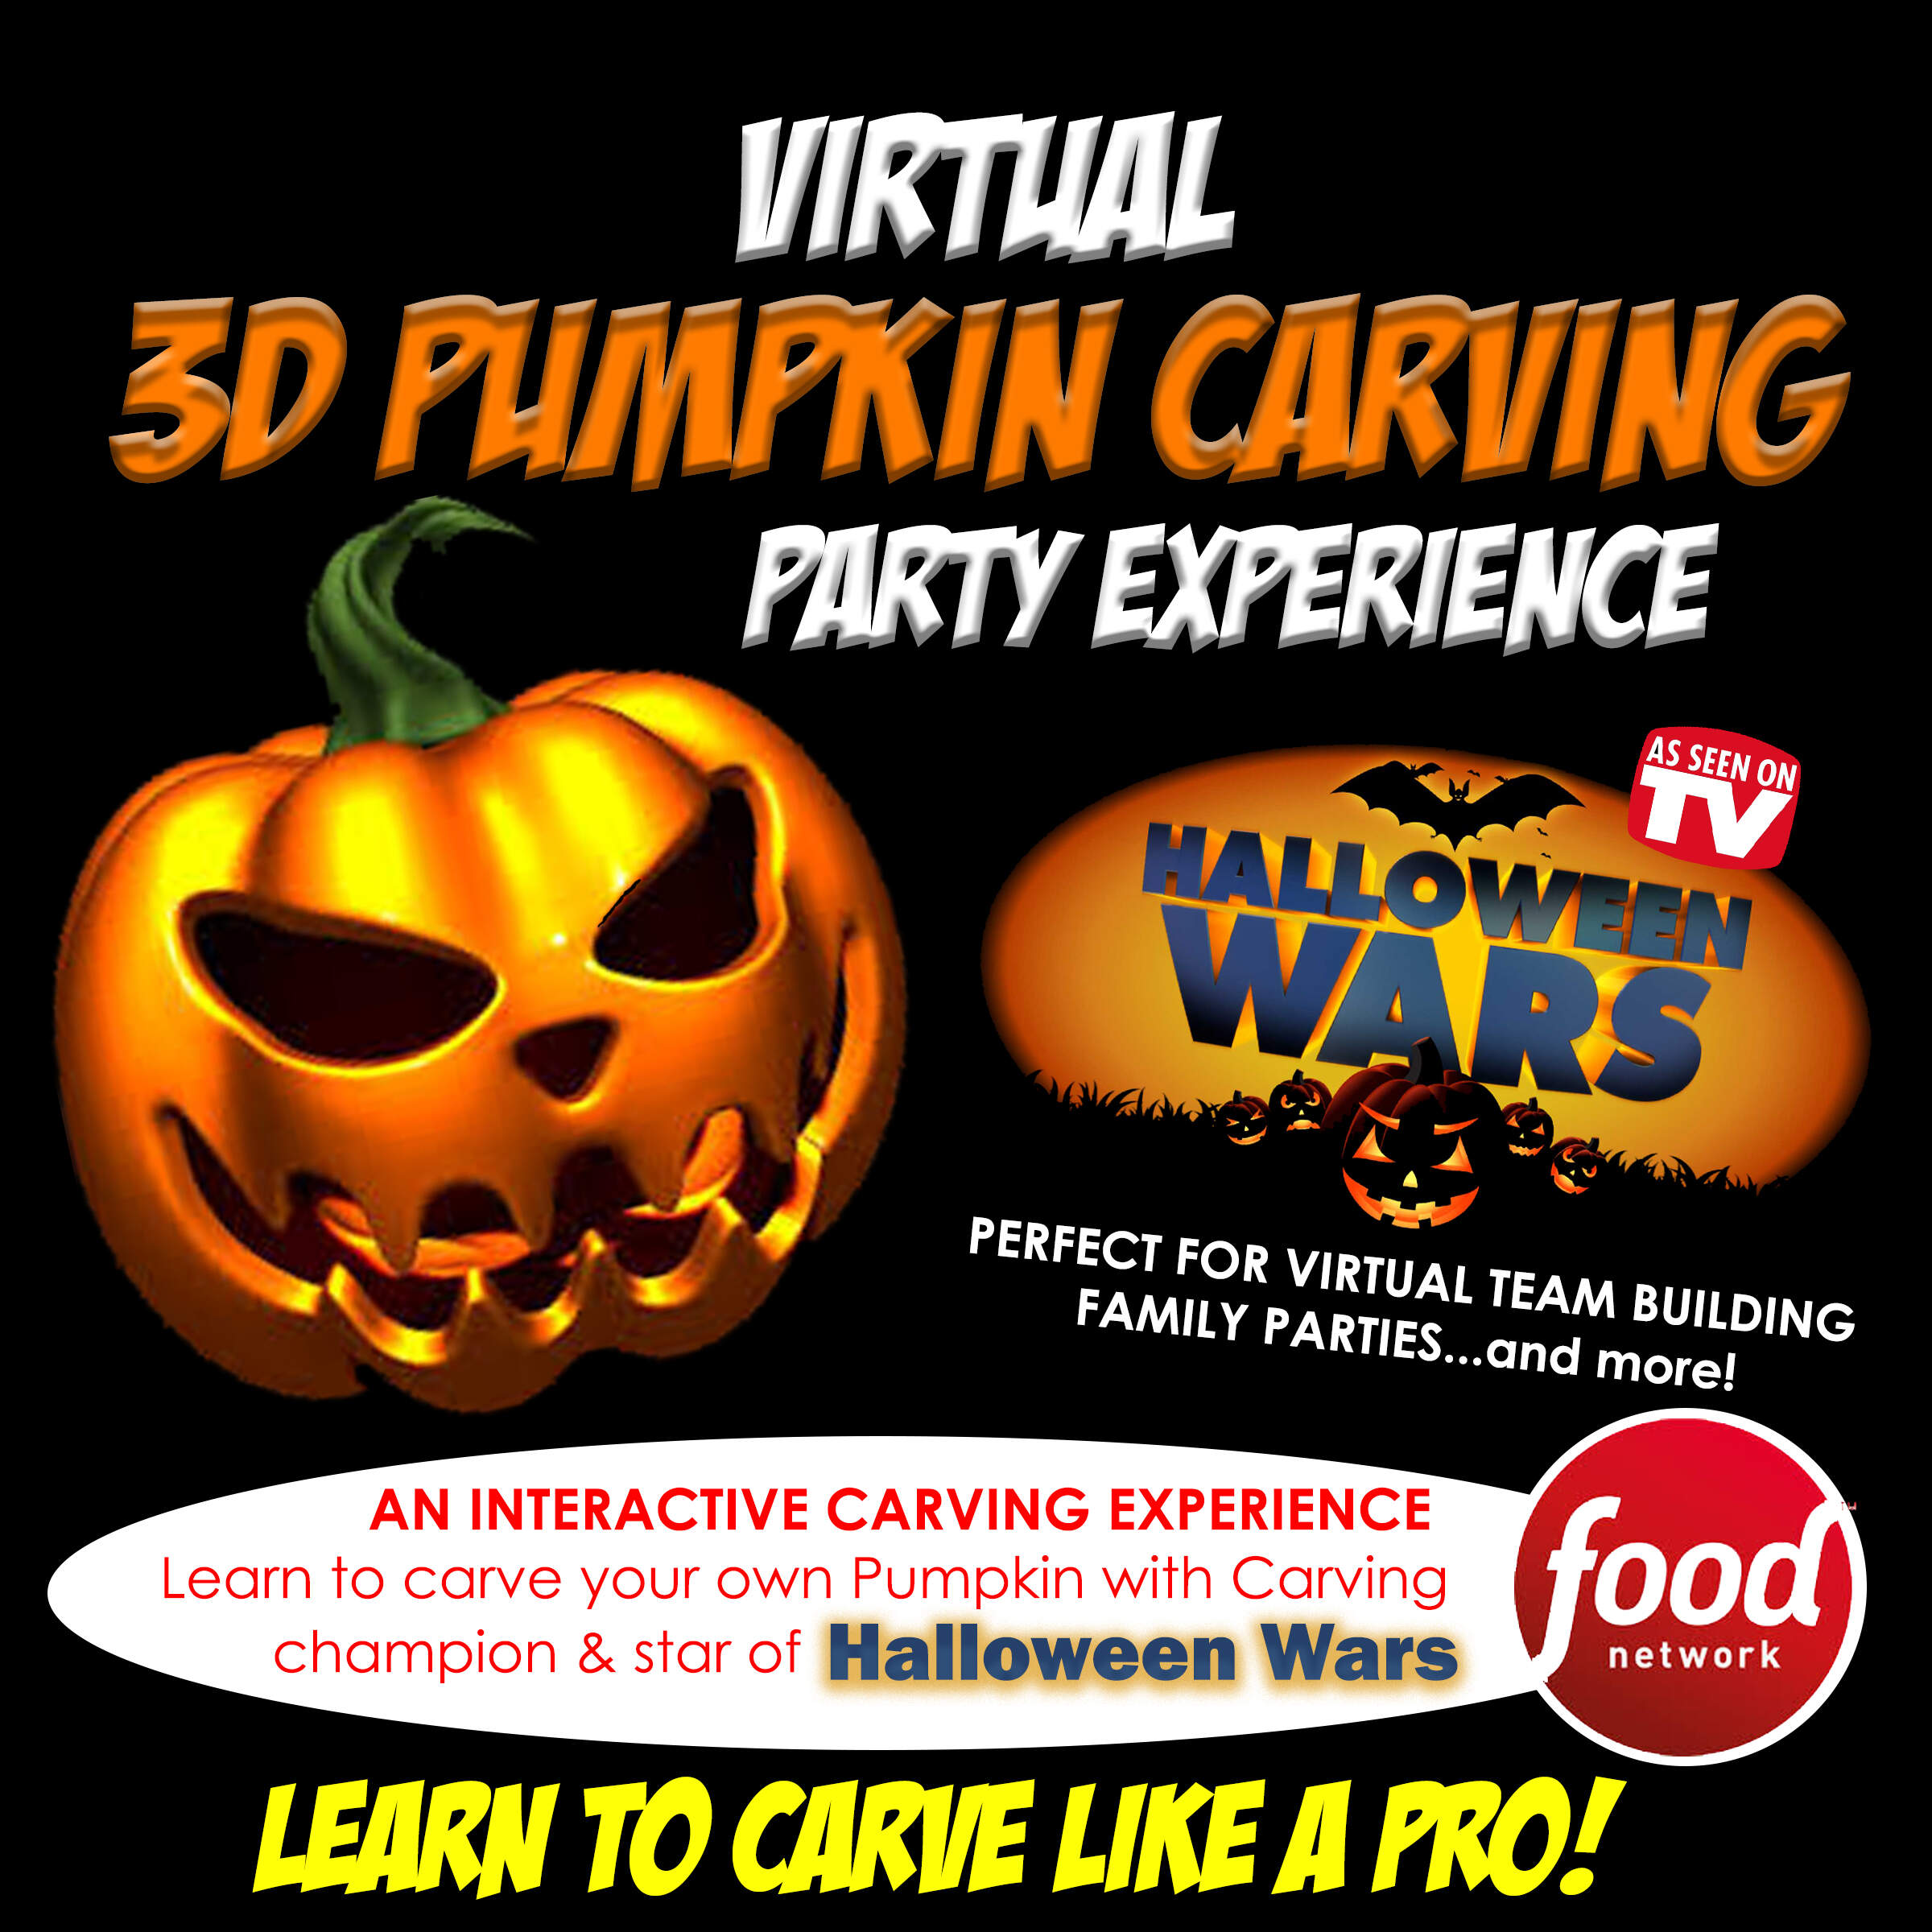 Zoom Halloween Party, Zoom Pumpkin Carving, Halloween Wars, Zoom Pumpkin Carver, Zoom Halloween, Zoom Party Ideas